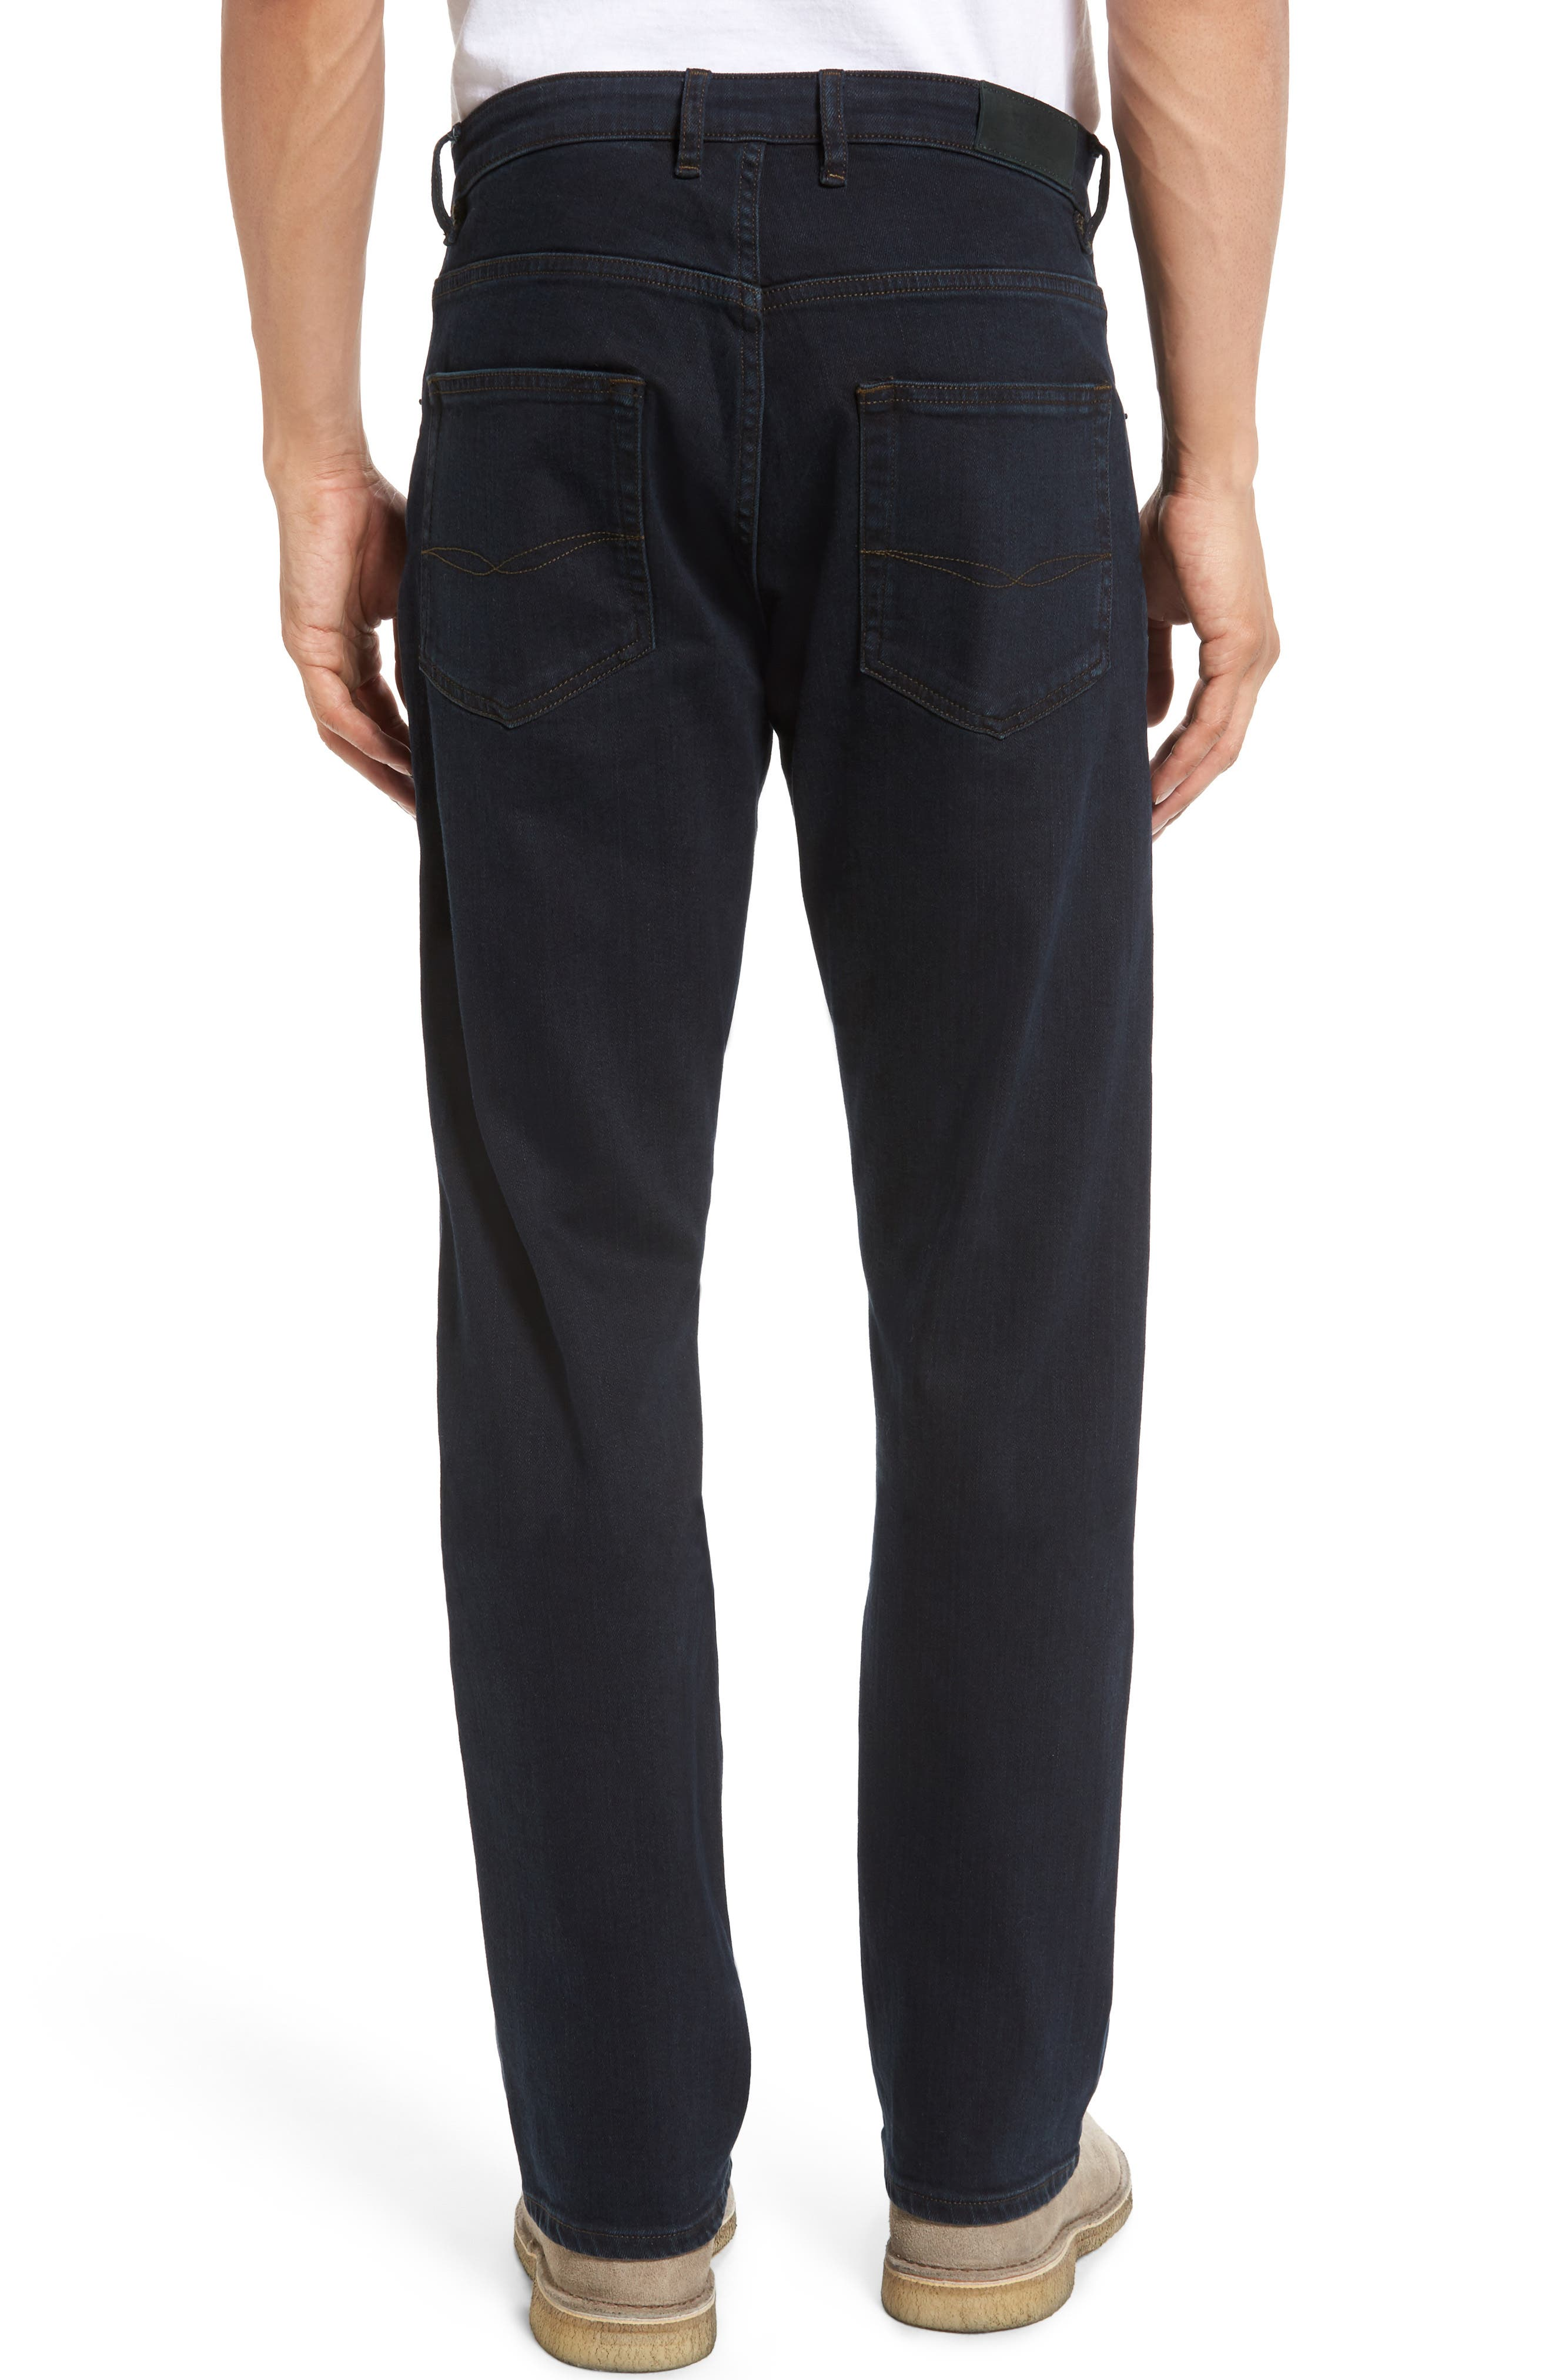 Cobham Relaxed Fit Jeans,                             Alternate thumbnail 2, color,                             Blue Black